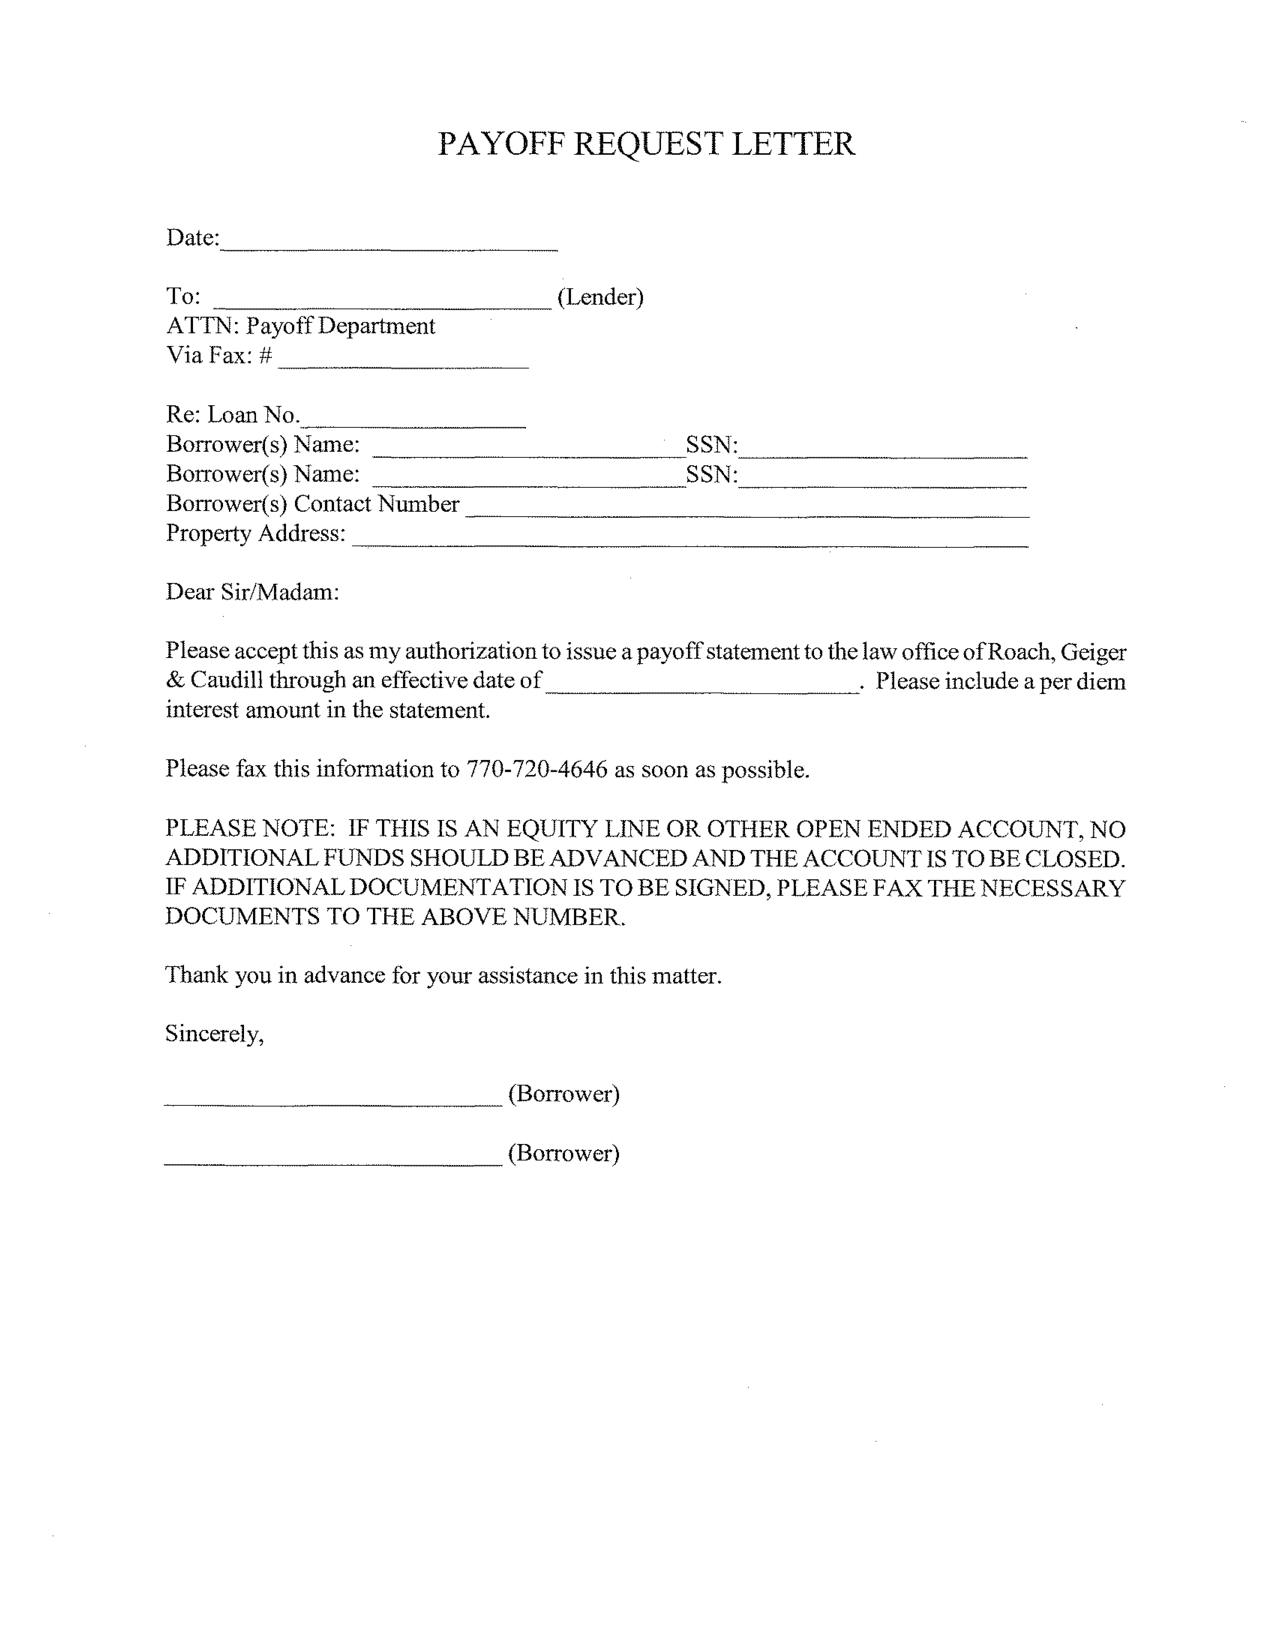 Statement Request Letter Example Letter Requesting A Statement Of Account Payoff Letter Lettering Statement Template